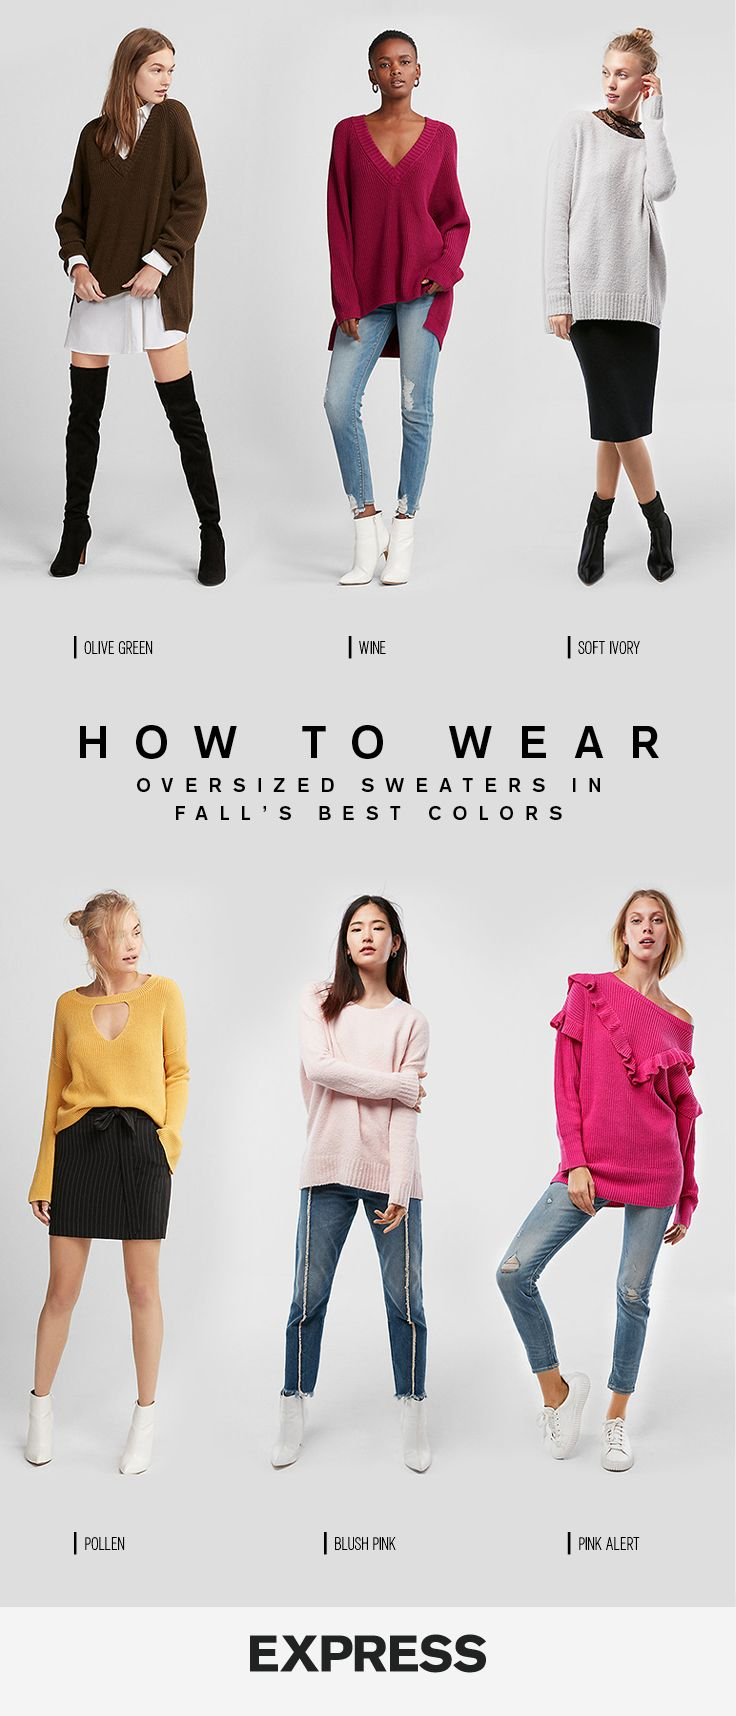 Nail casual winter style with these 6 oversized sweaters in fall's hottest hues. Mix up your black and gray go-tos with fuchsia, mustard, burgundy or cream sweaters. The best part, all of them pair with everything in your closet, from skirts to jeans.